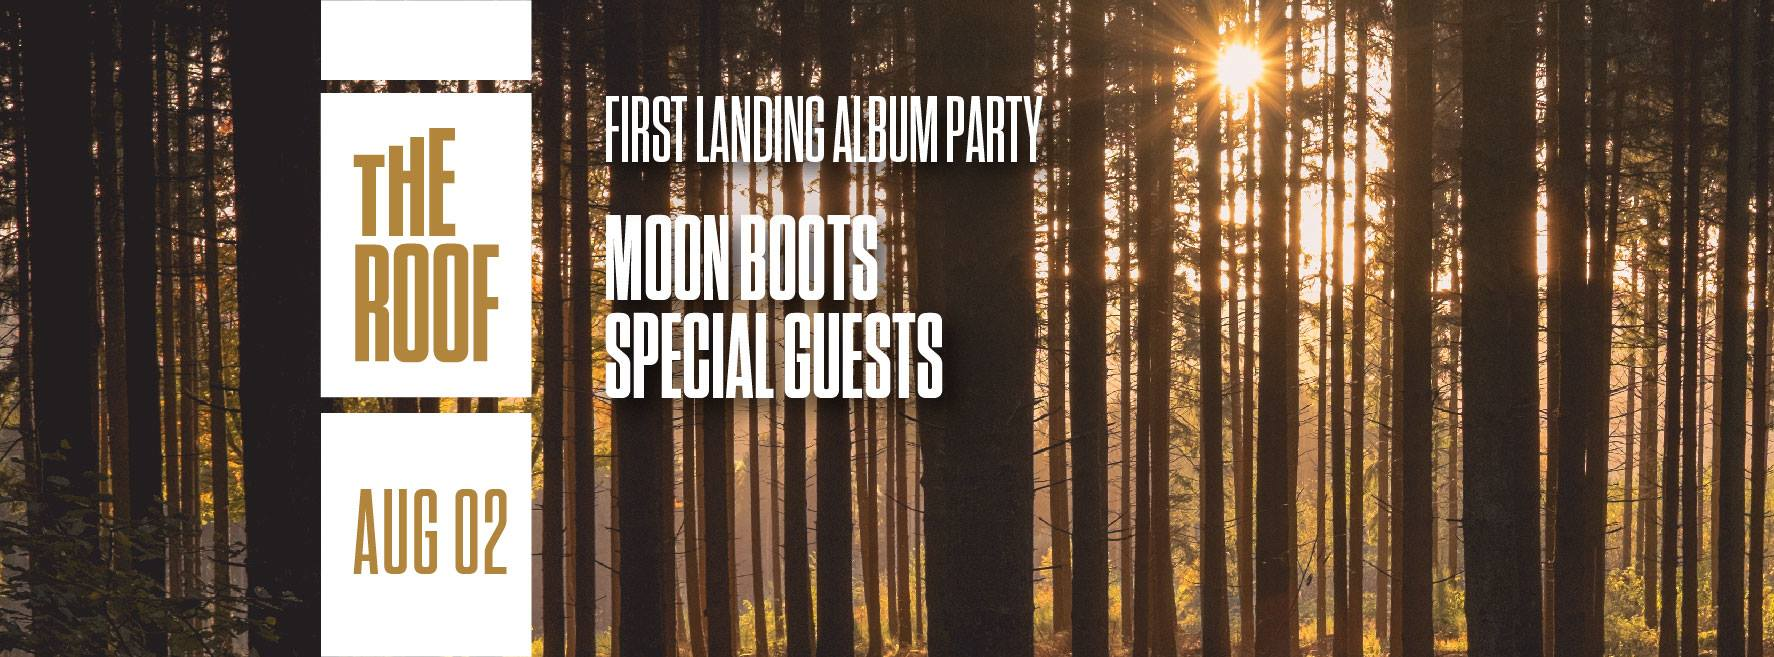 Moon Boots Output Robbie Lumpkin Promotions